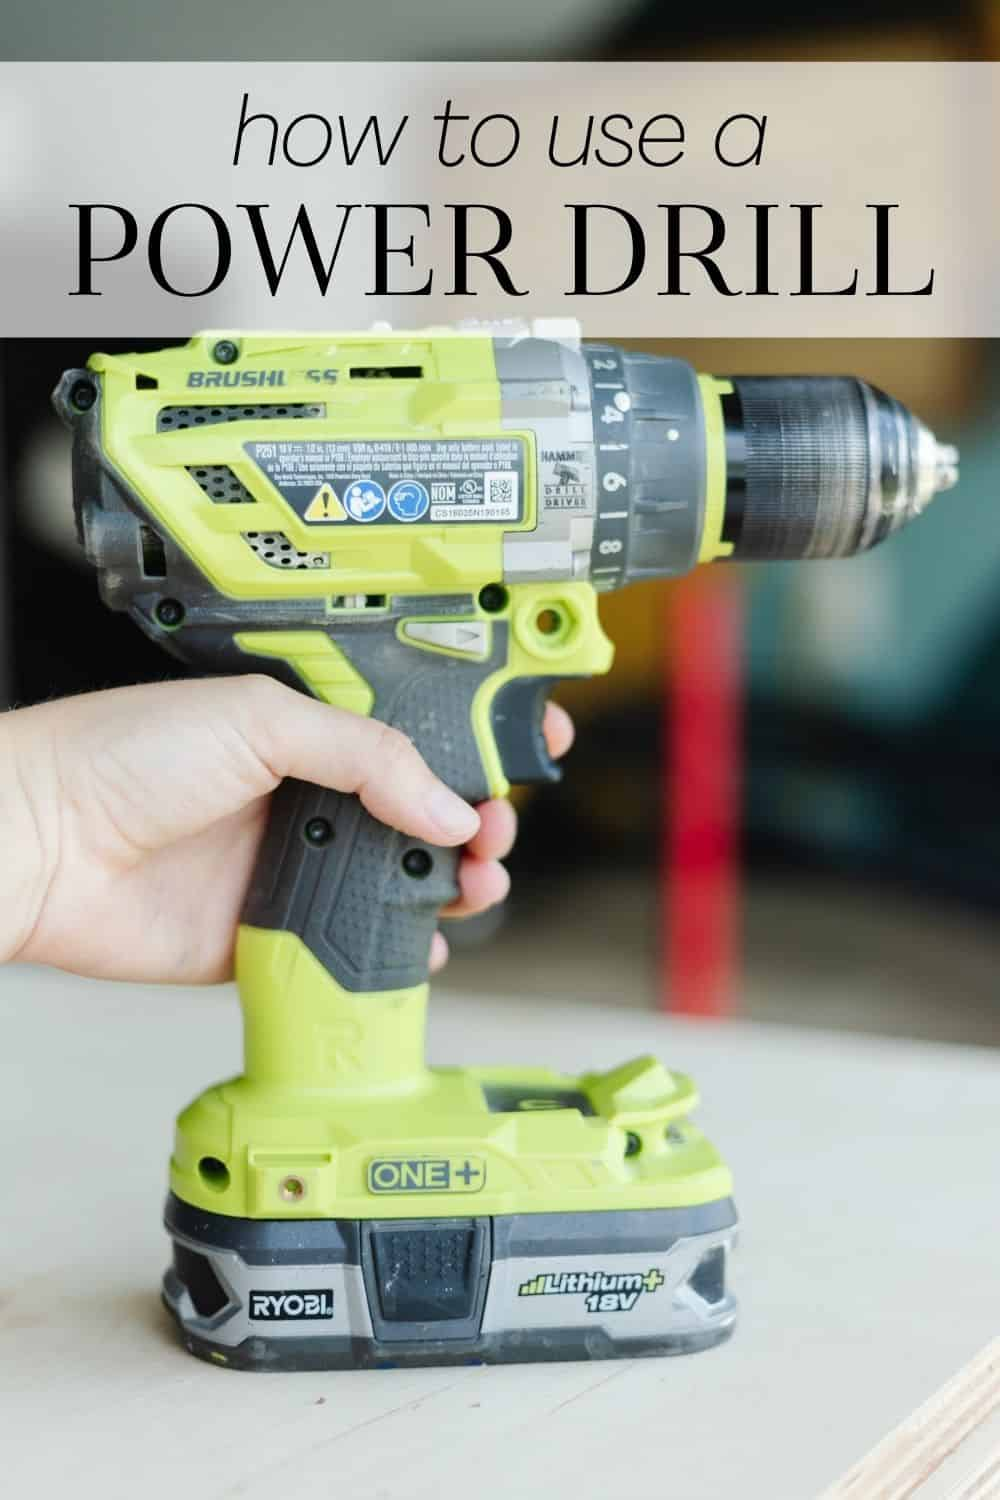 """A close up of a Ryobi drill with a woman's hand holding it. The text overlay says """"how to use a power drill"""""""